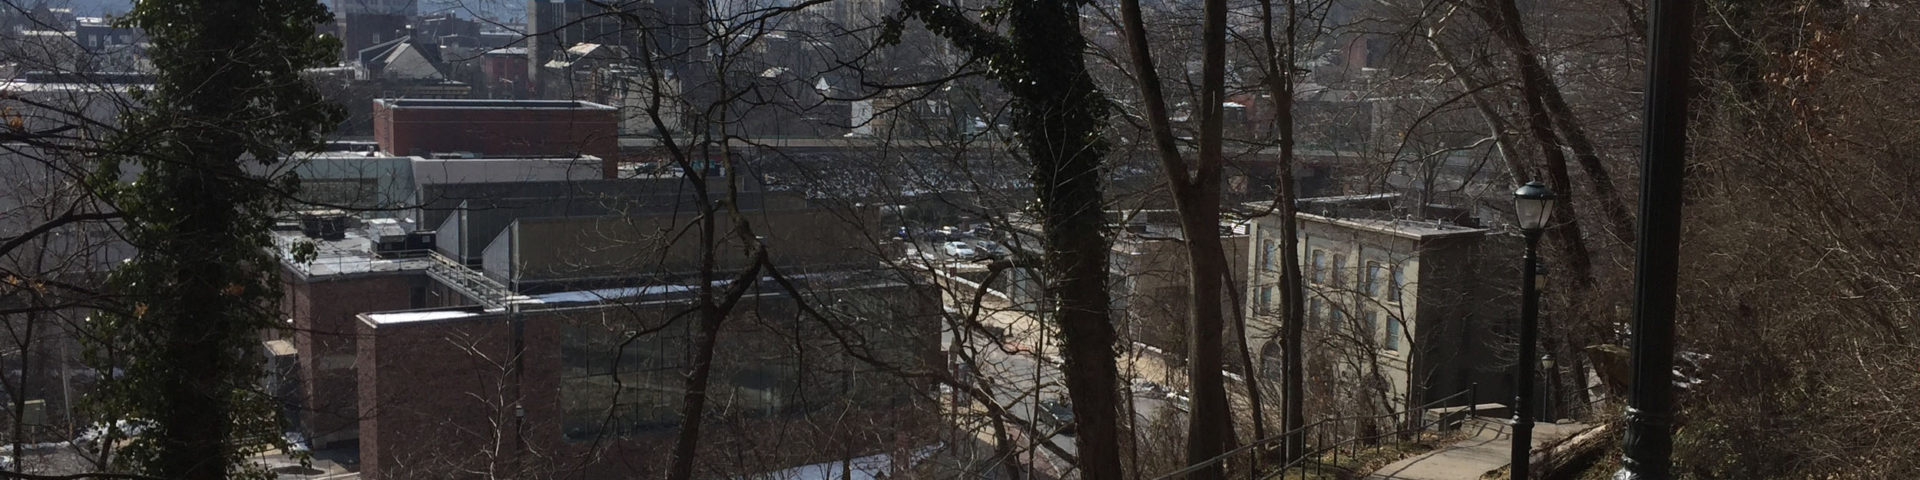 Bare trees and a concrete path overlook the city of Easton.